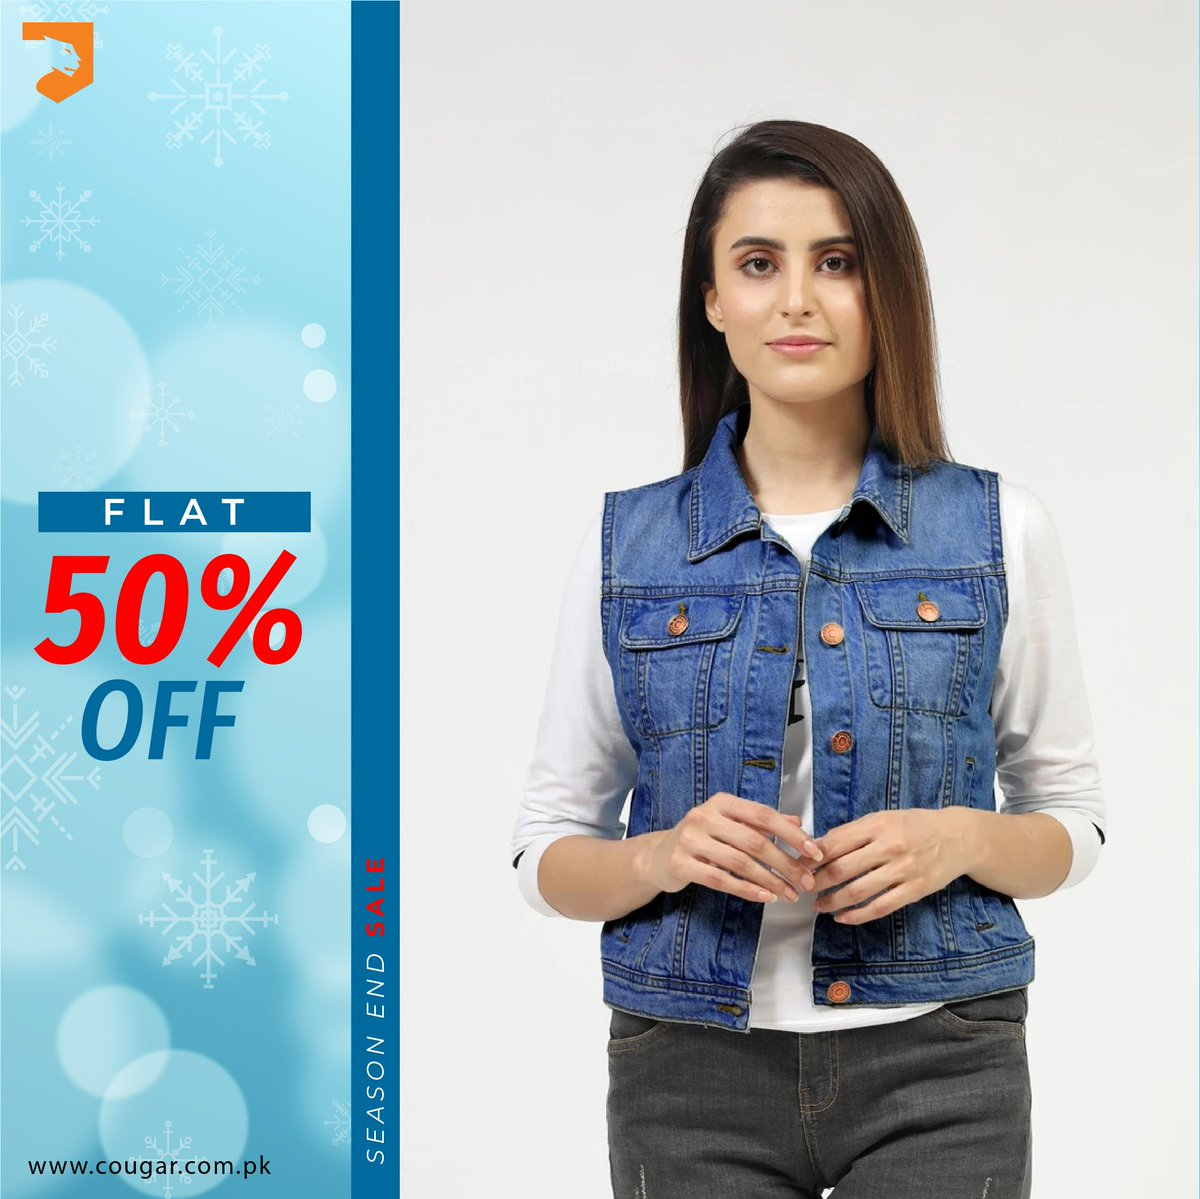 All New Jackets at FLAT 50% OFF on Season End Sale. For more details:    #cougarclothing #cougarcrew #jointhecrew #eoss #newstyles #sale #women #onlineshopping #denim